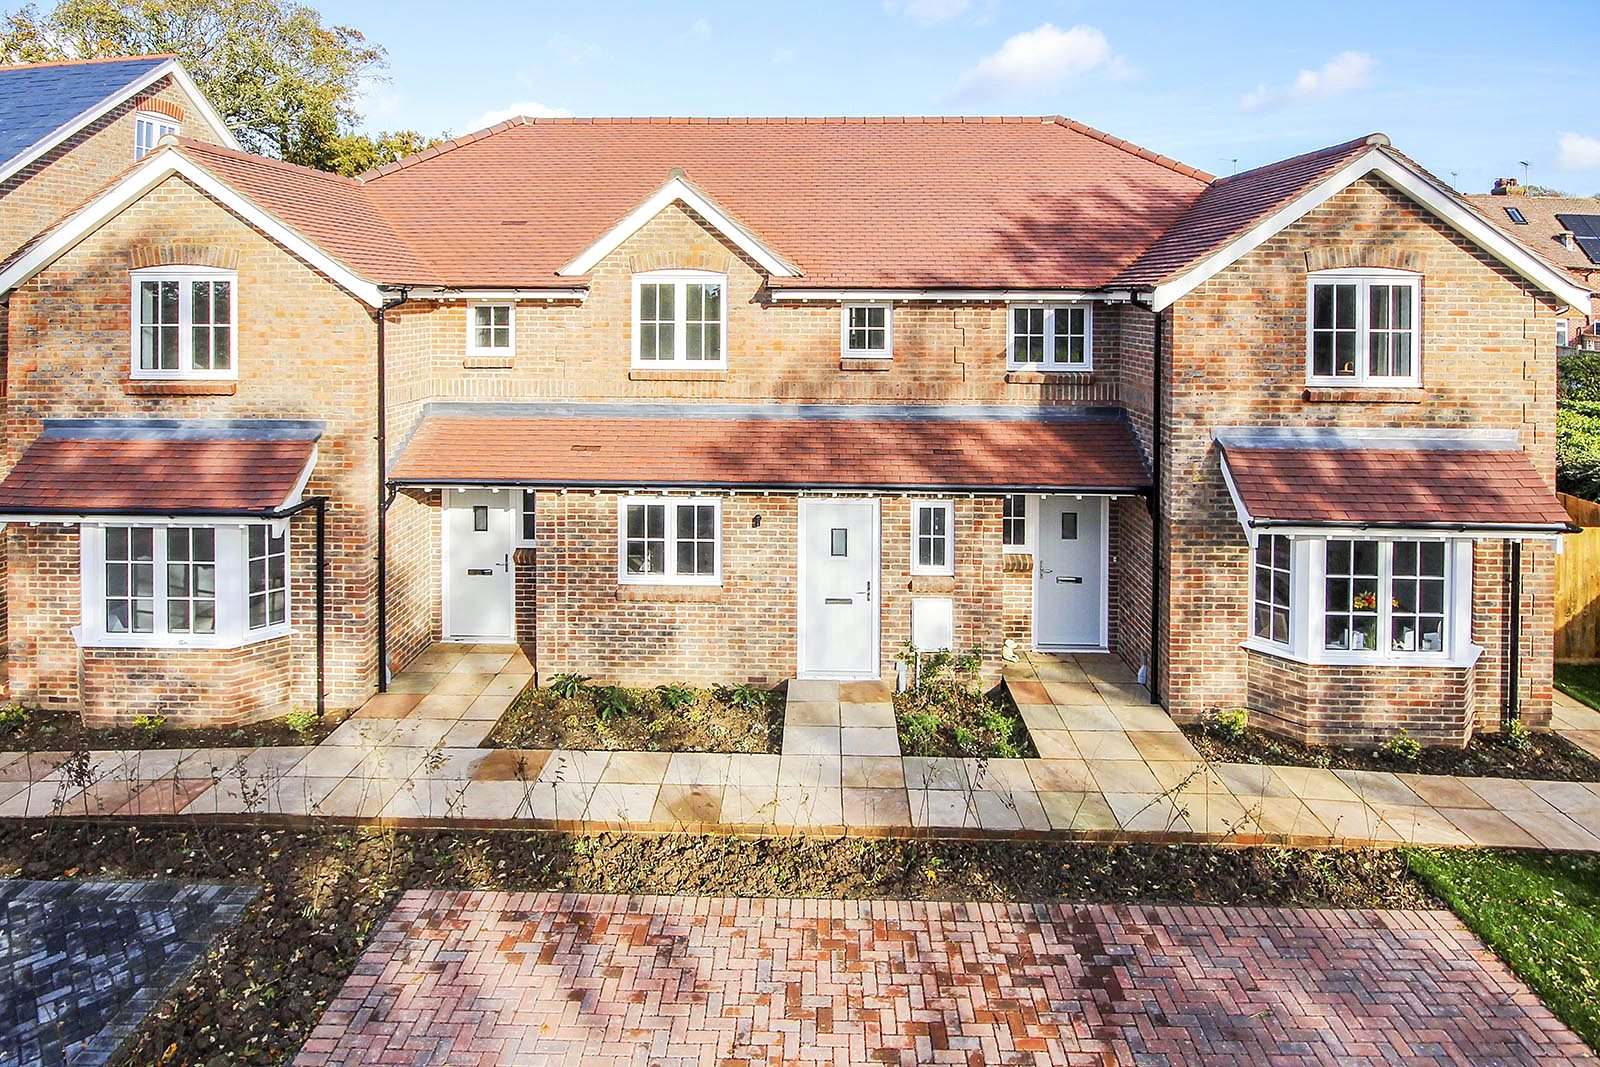 2 bed house for sale in Brickyard Cottages Long Furlong, Clapham,  - Property Image 1